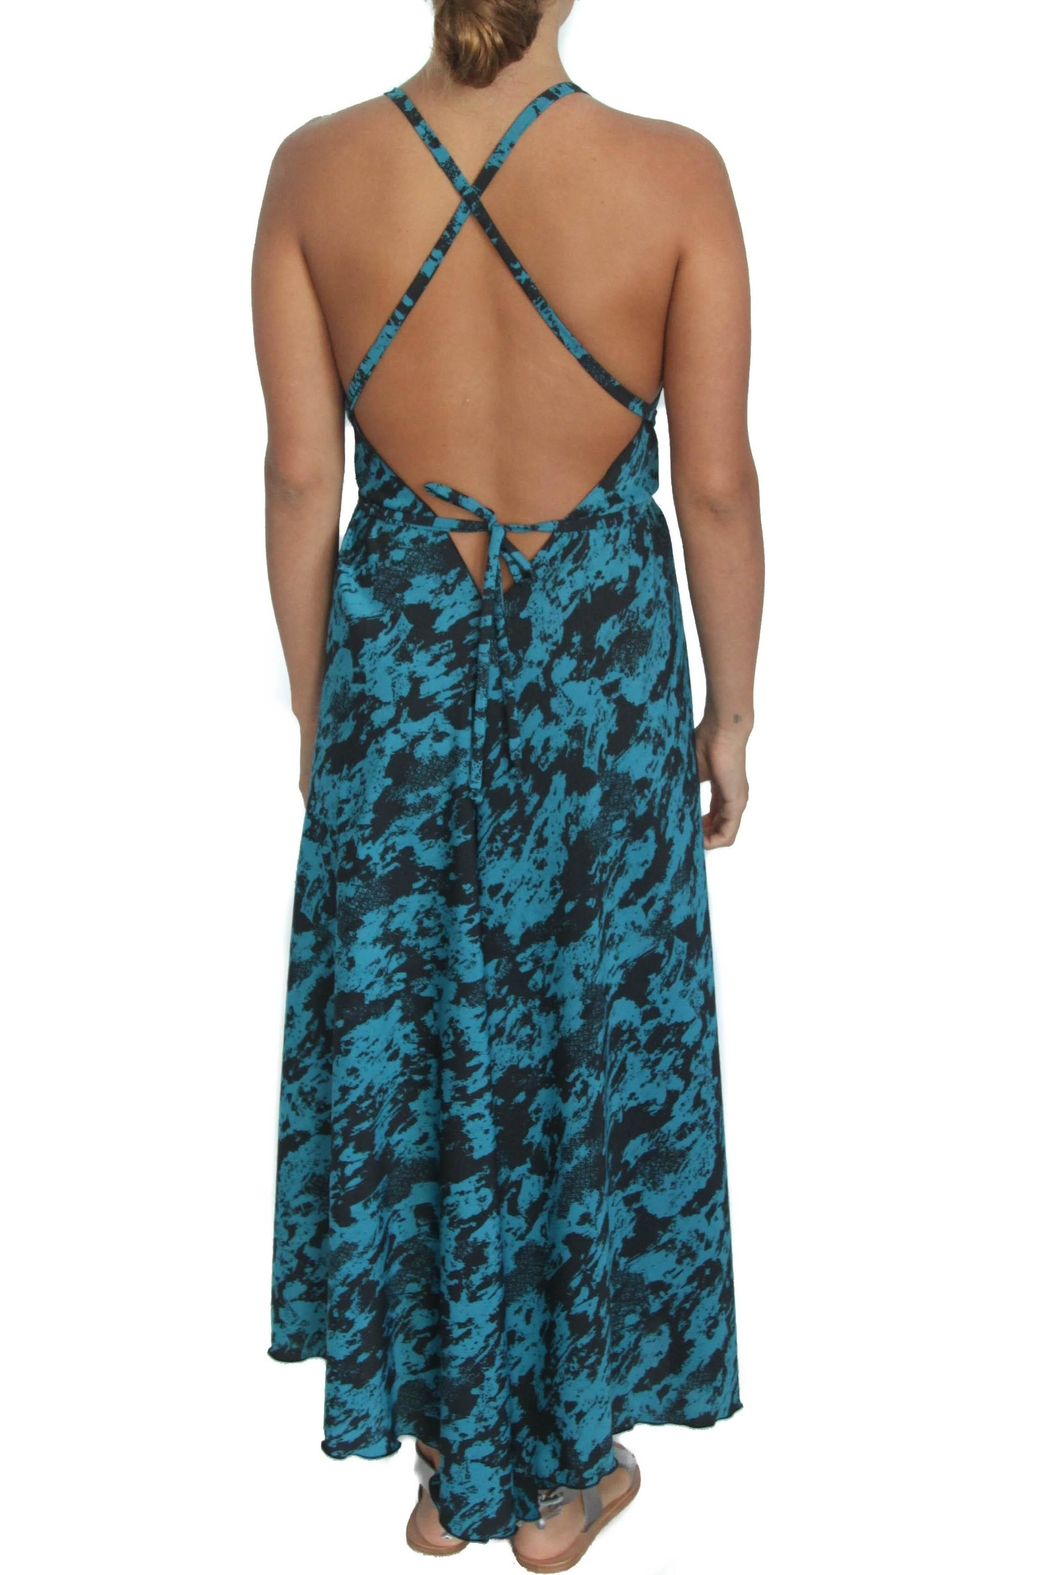 LOVEleigh Mystery Noosa Dress - Front Full Image